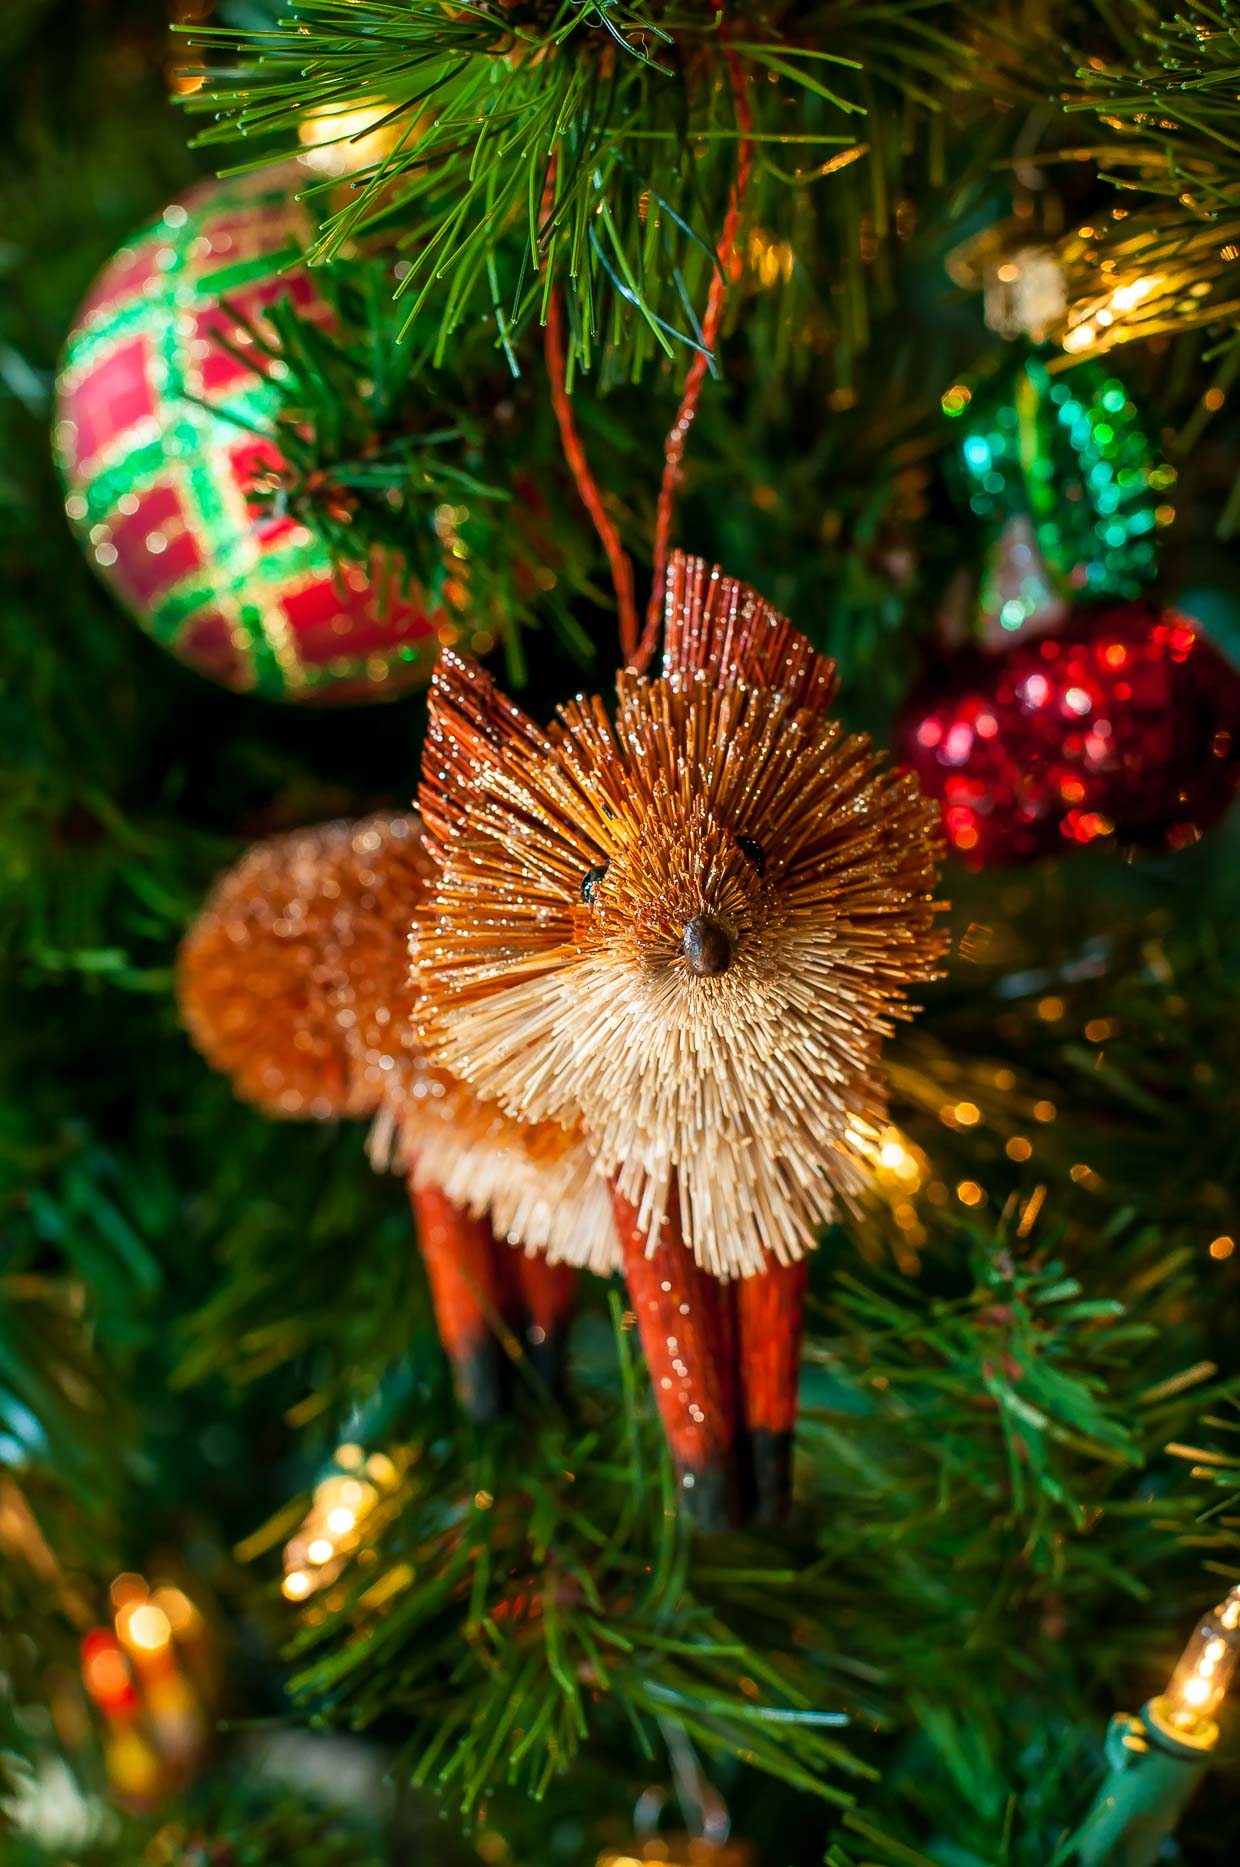 Christmas Tree-dition 2016: Our family's favorite holiday tradition - Fox Ornament